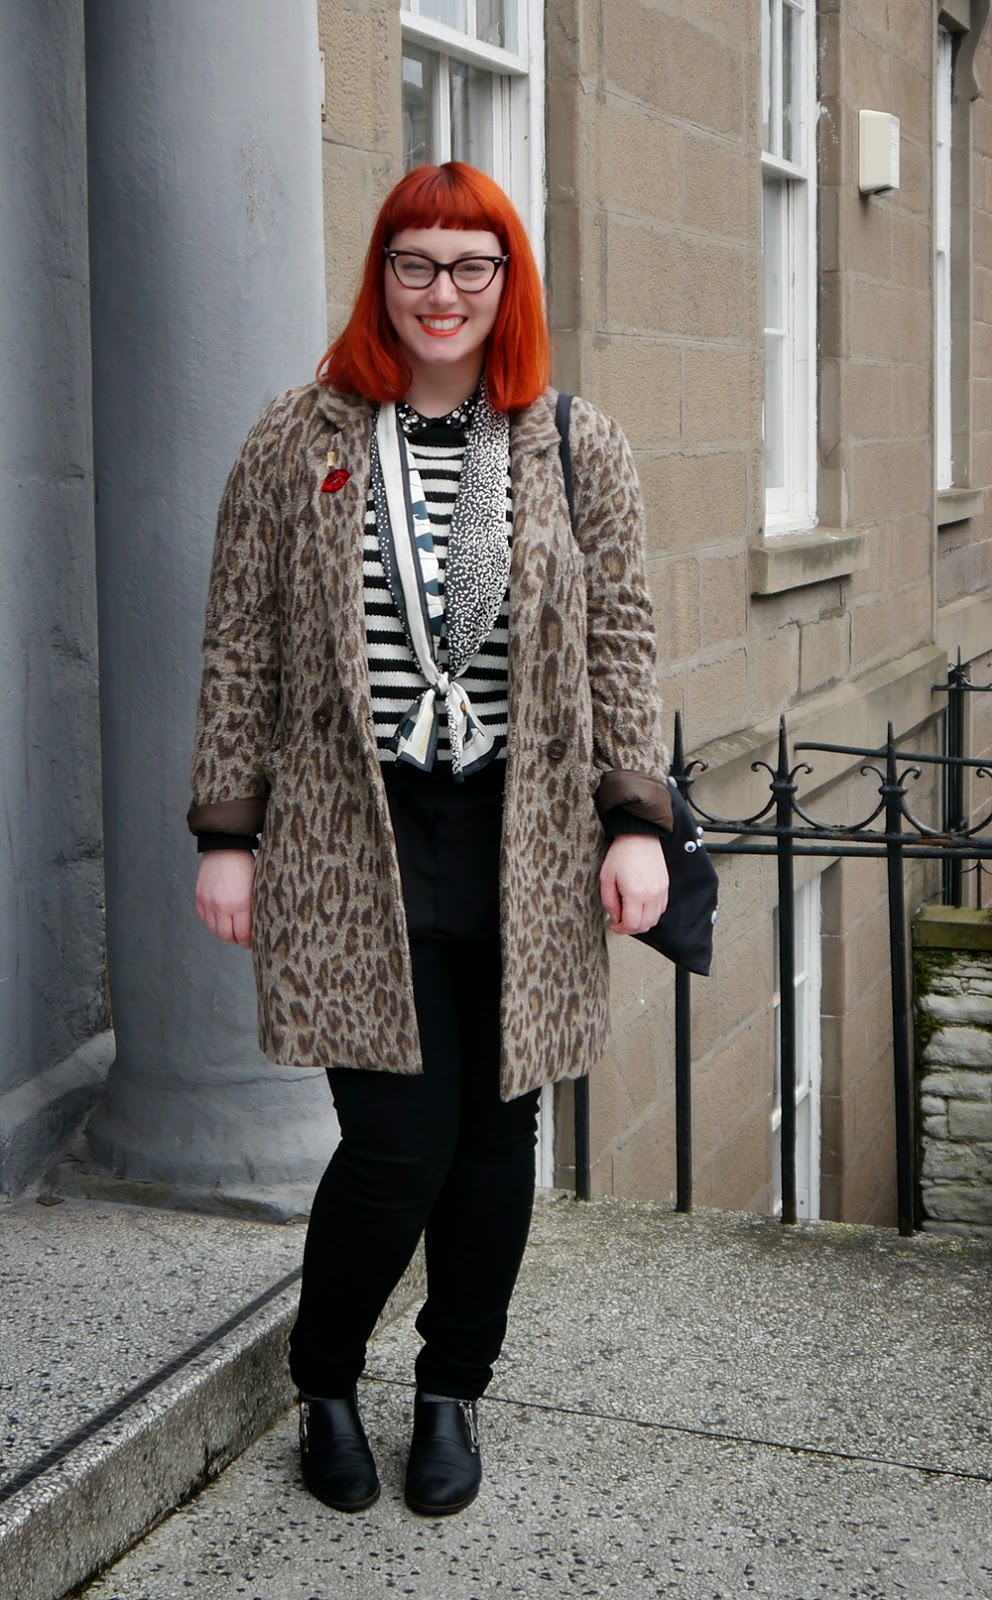 Scottish bloggers, Dundee, Dundee Contemporary arts, DCA, Art Exhibition, what Helen wore, monochrome outfite, H&M jewelled collar shirt, stripey Zara Jumper, Karen Mabon penquin Scarf, googley eye bag, red head, scottish street style, Dundee street style, Warehouse leopard print coat, comfy clarks shoes, work outfit, workwear, basic black jeans